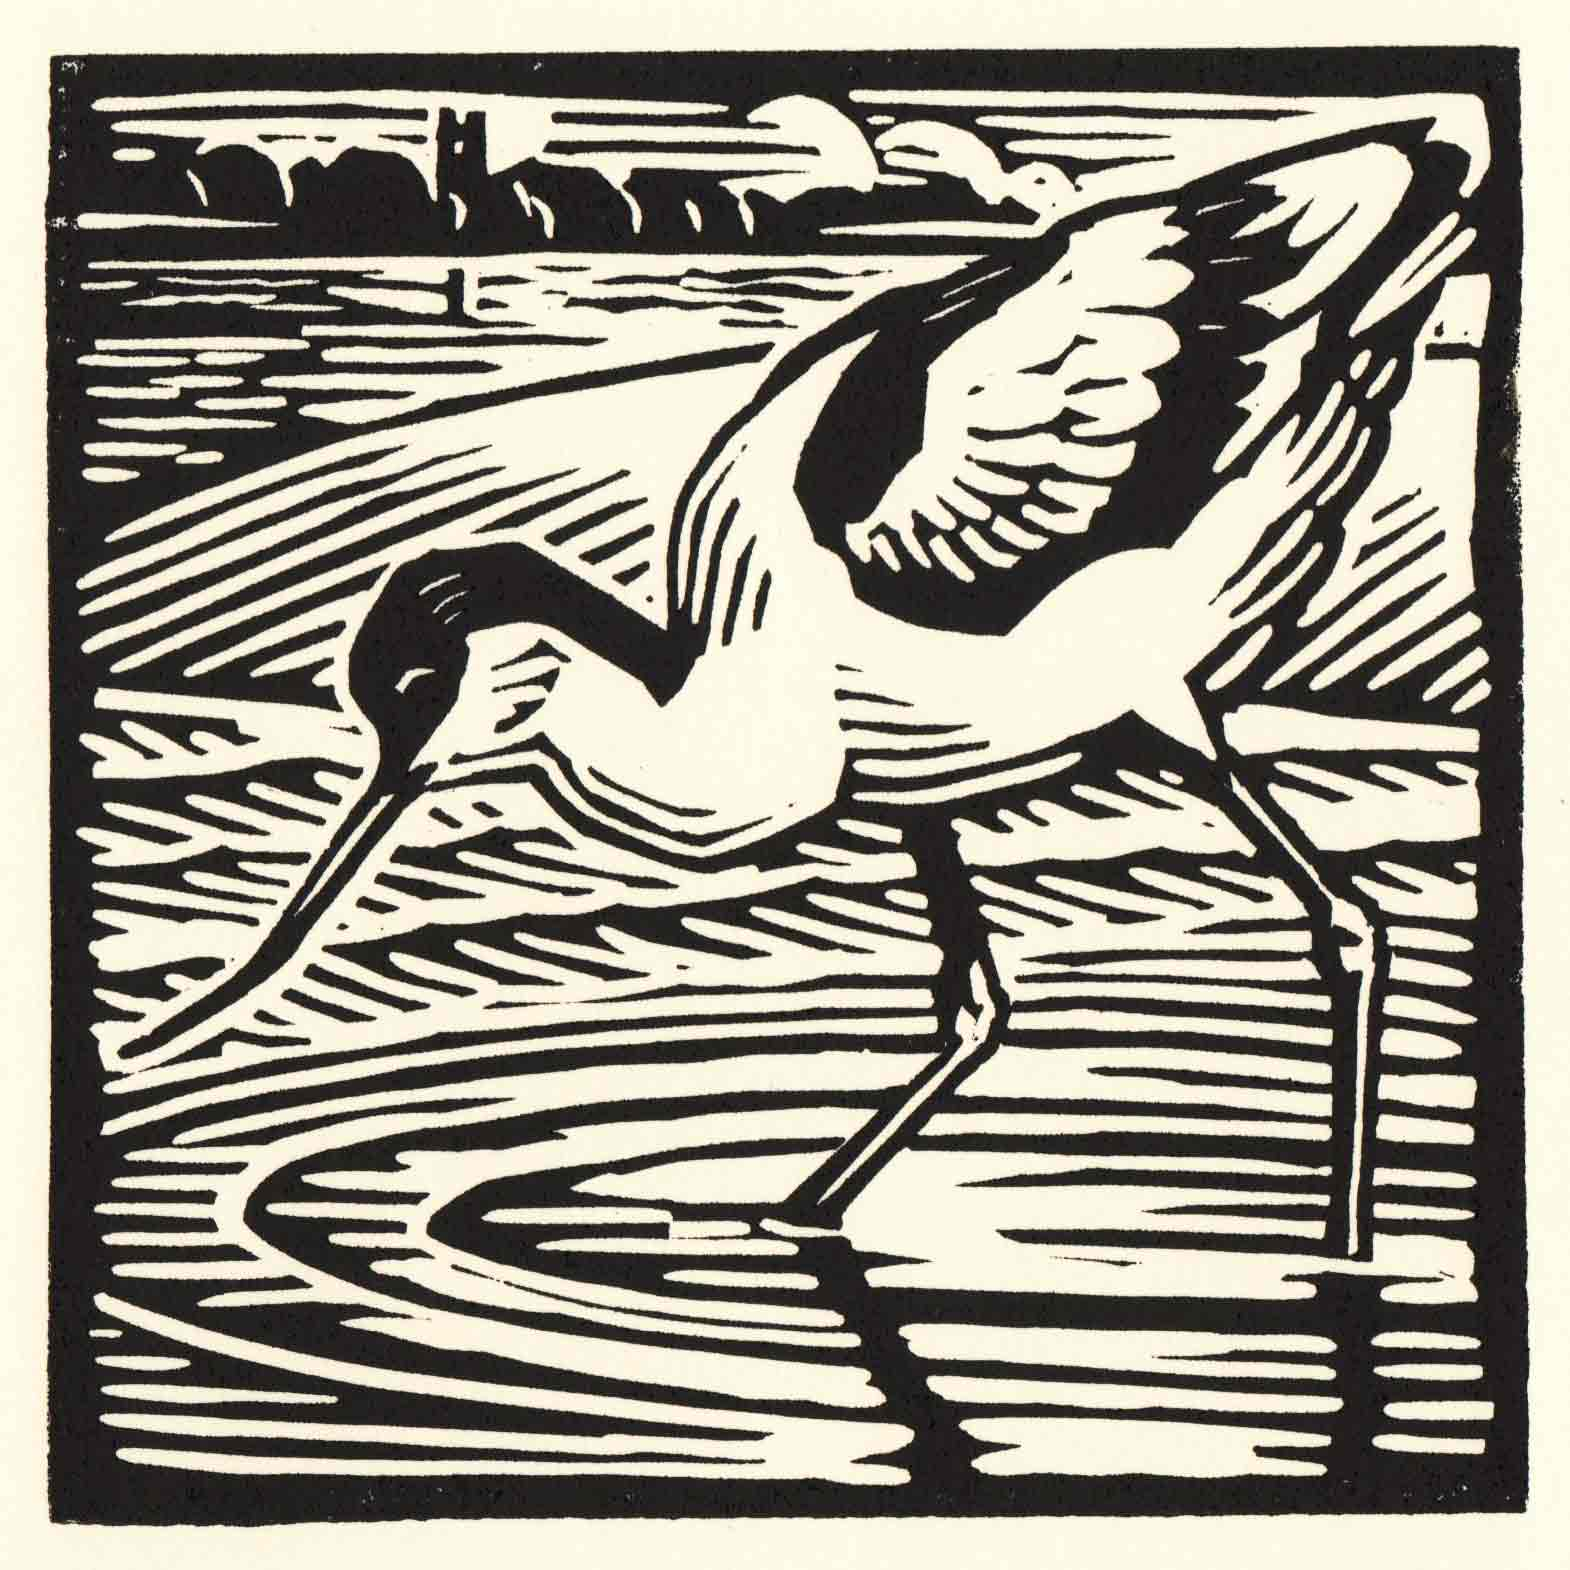 Art Greeting Card by Richard Allen, Avocet, Linocut, Avocet wading